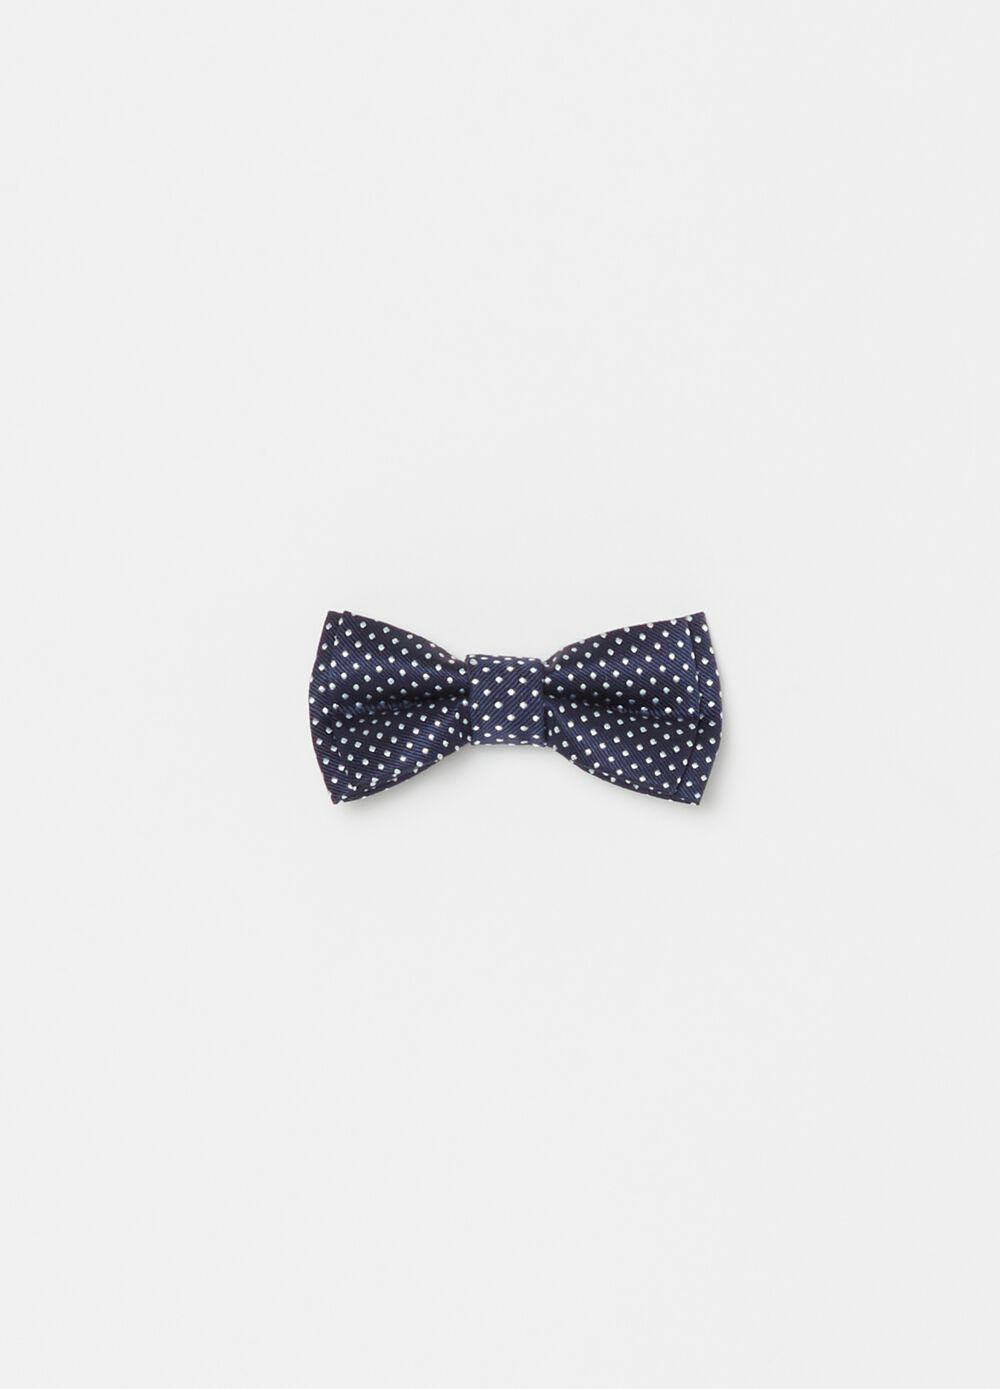 Polka dot patterned bow tie